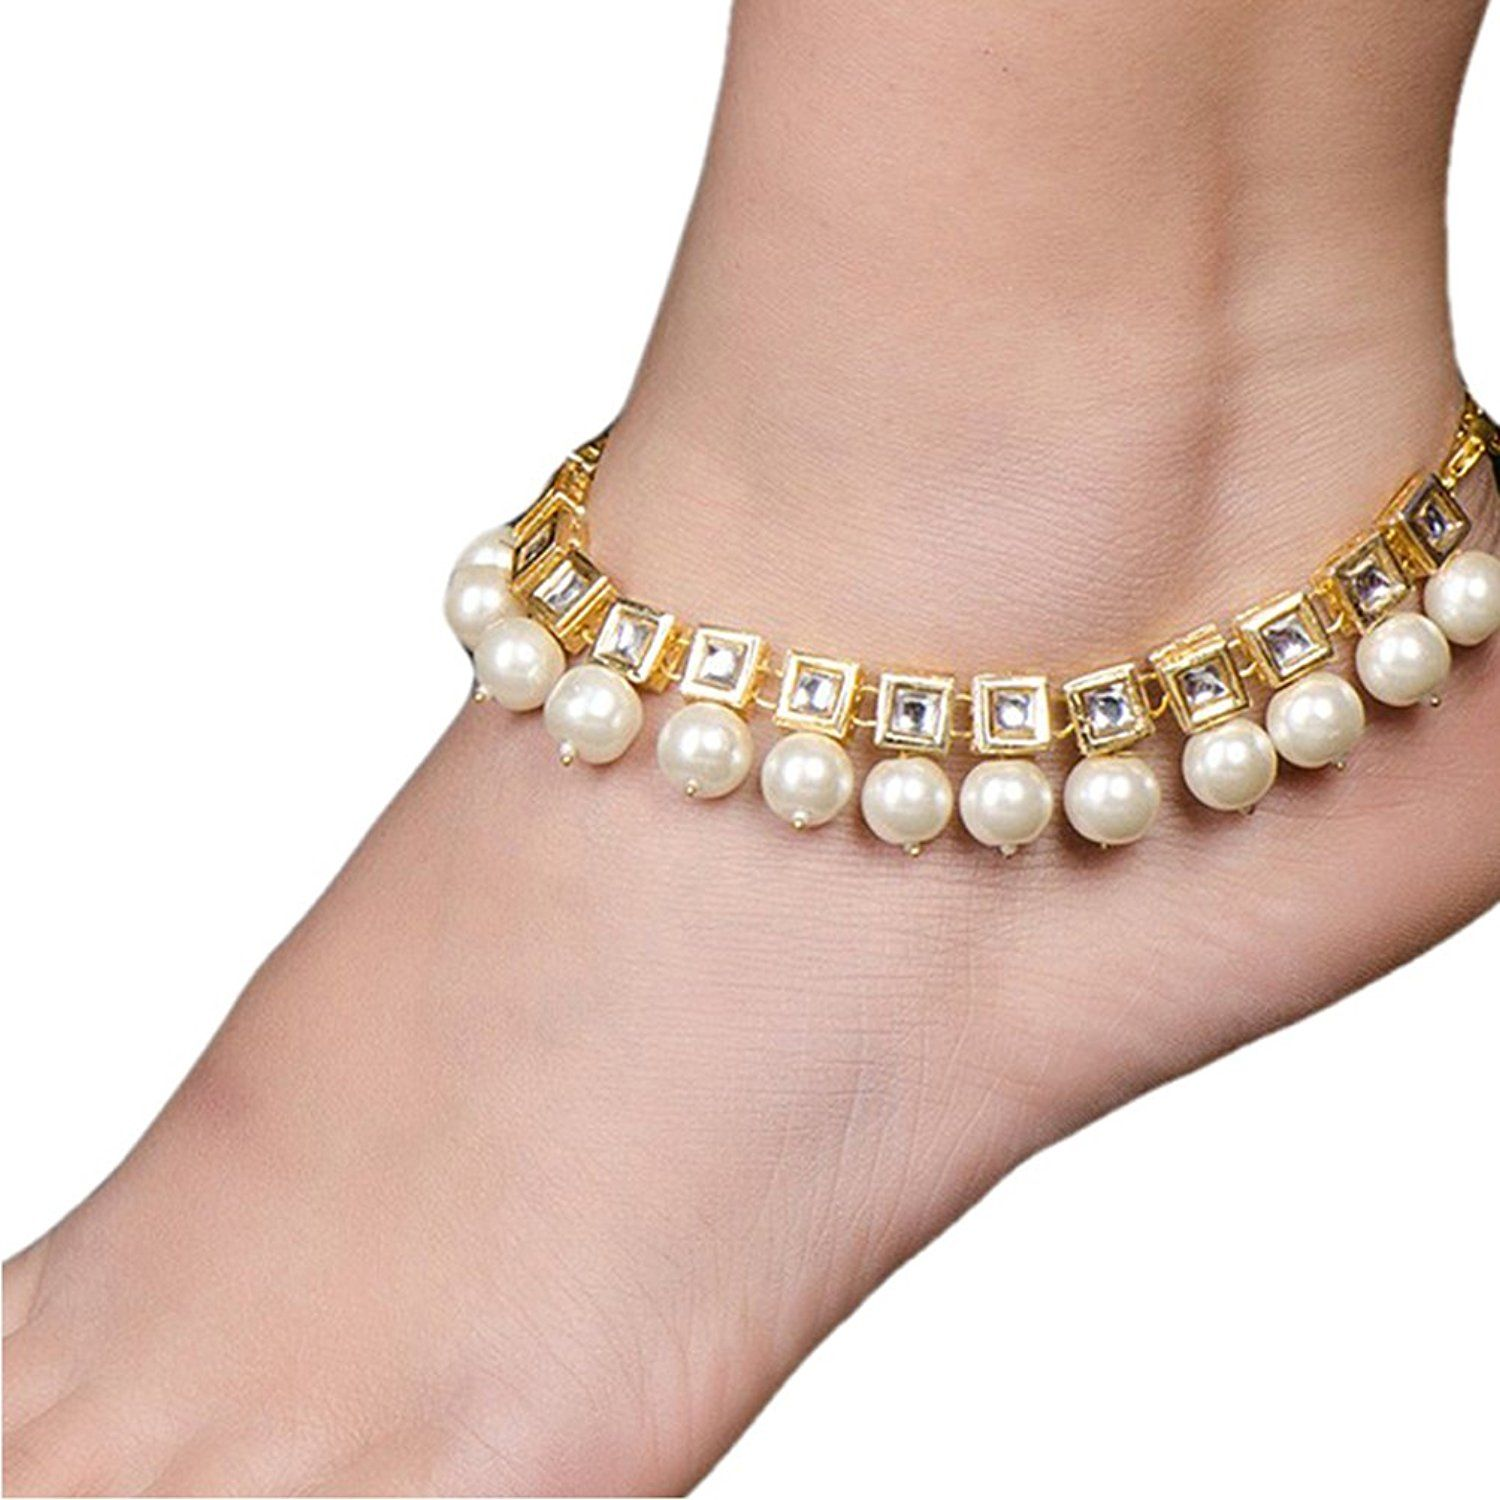 jewelry wedding anklet with crystal heels fancy barefoot toe ring sandal chain foot beach rhinestone high